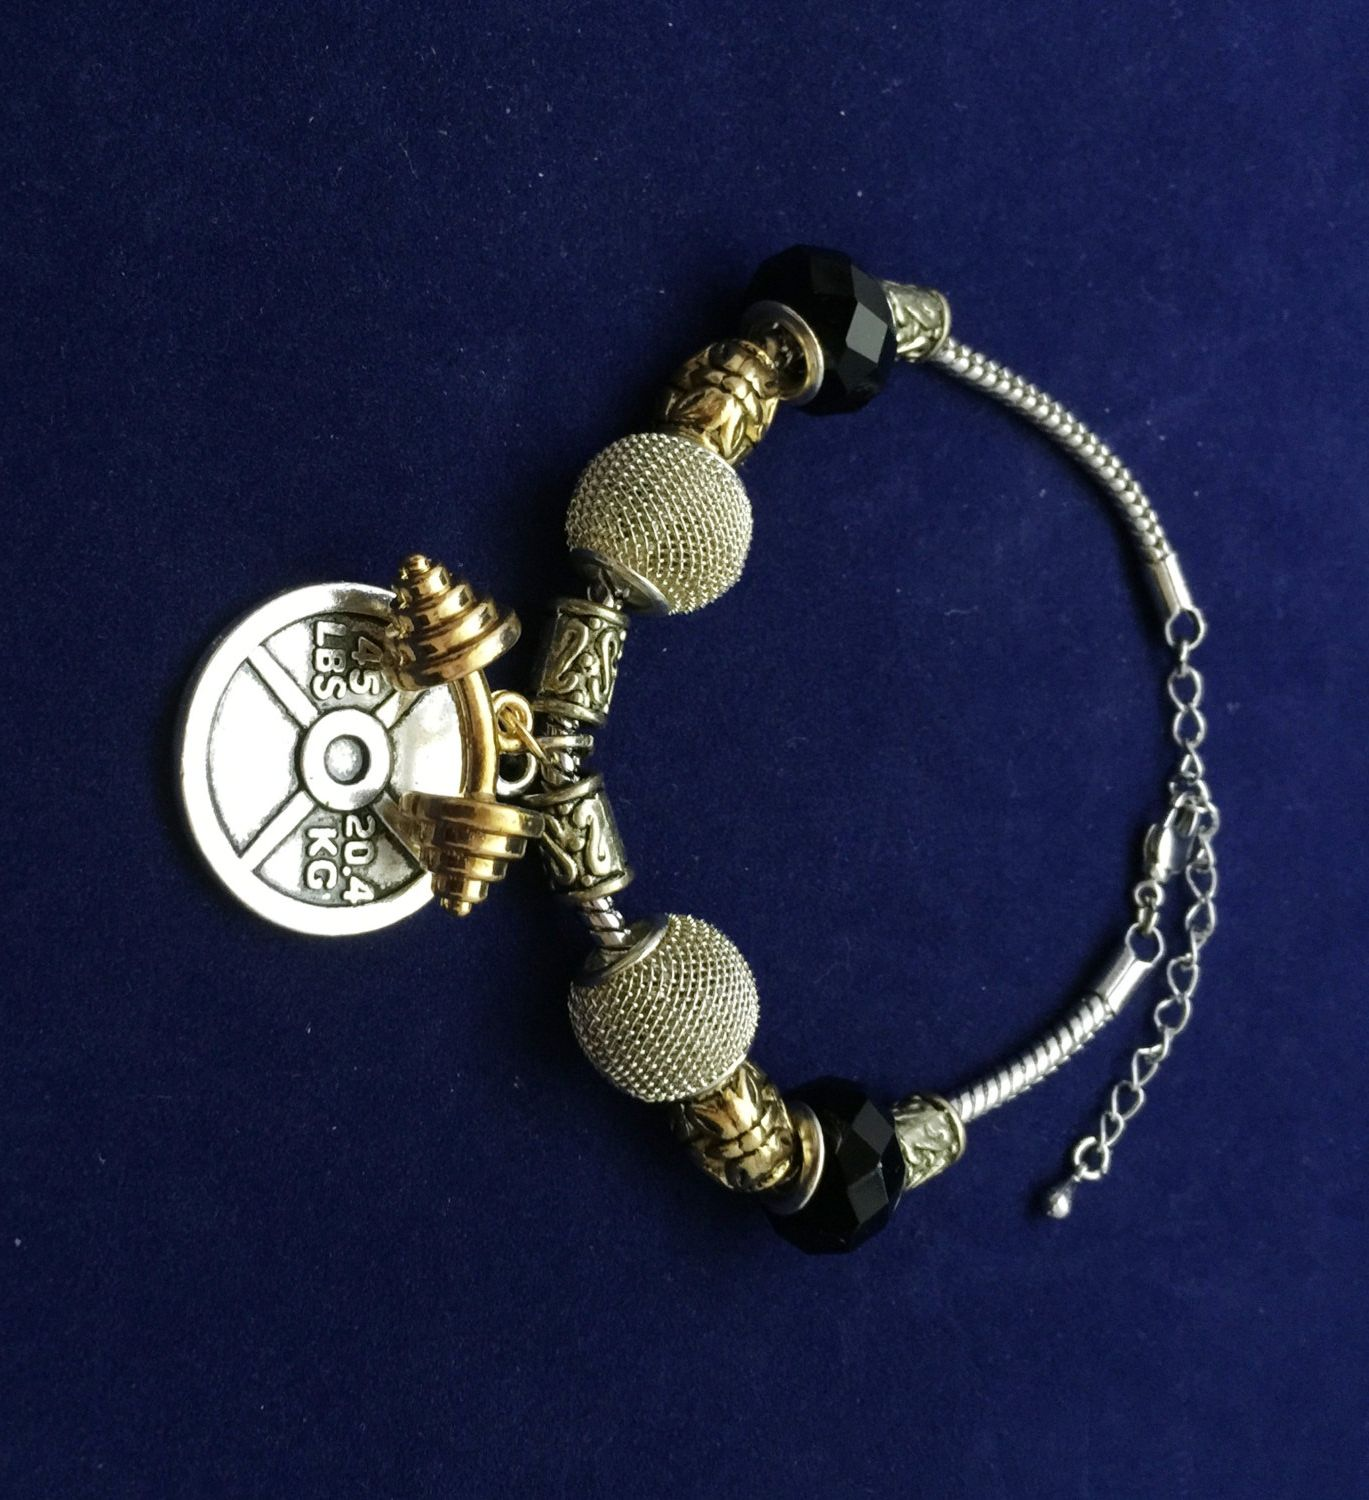 Pandora Style Bracelet With Barbell And 45lb Weight Plate Charm By  Maideniron On Etsy